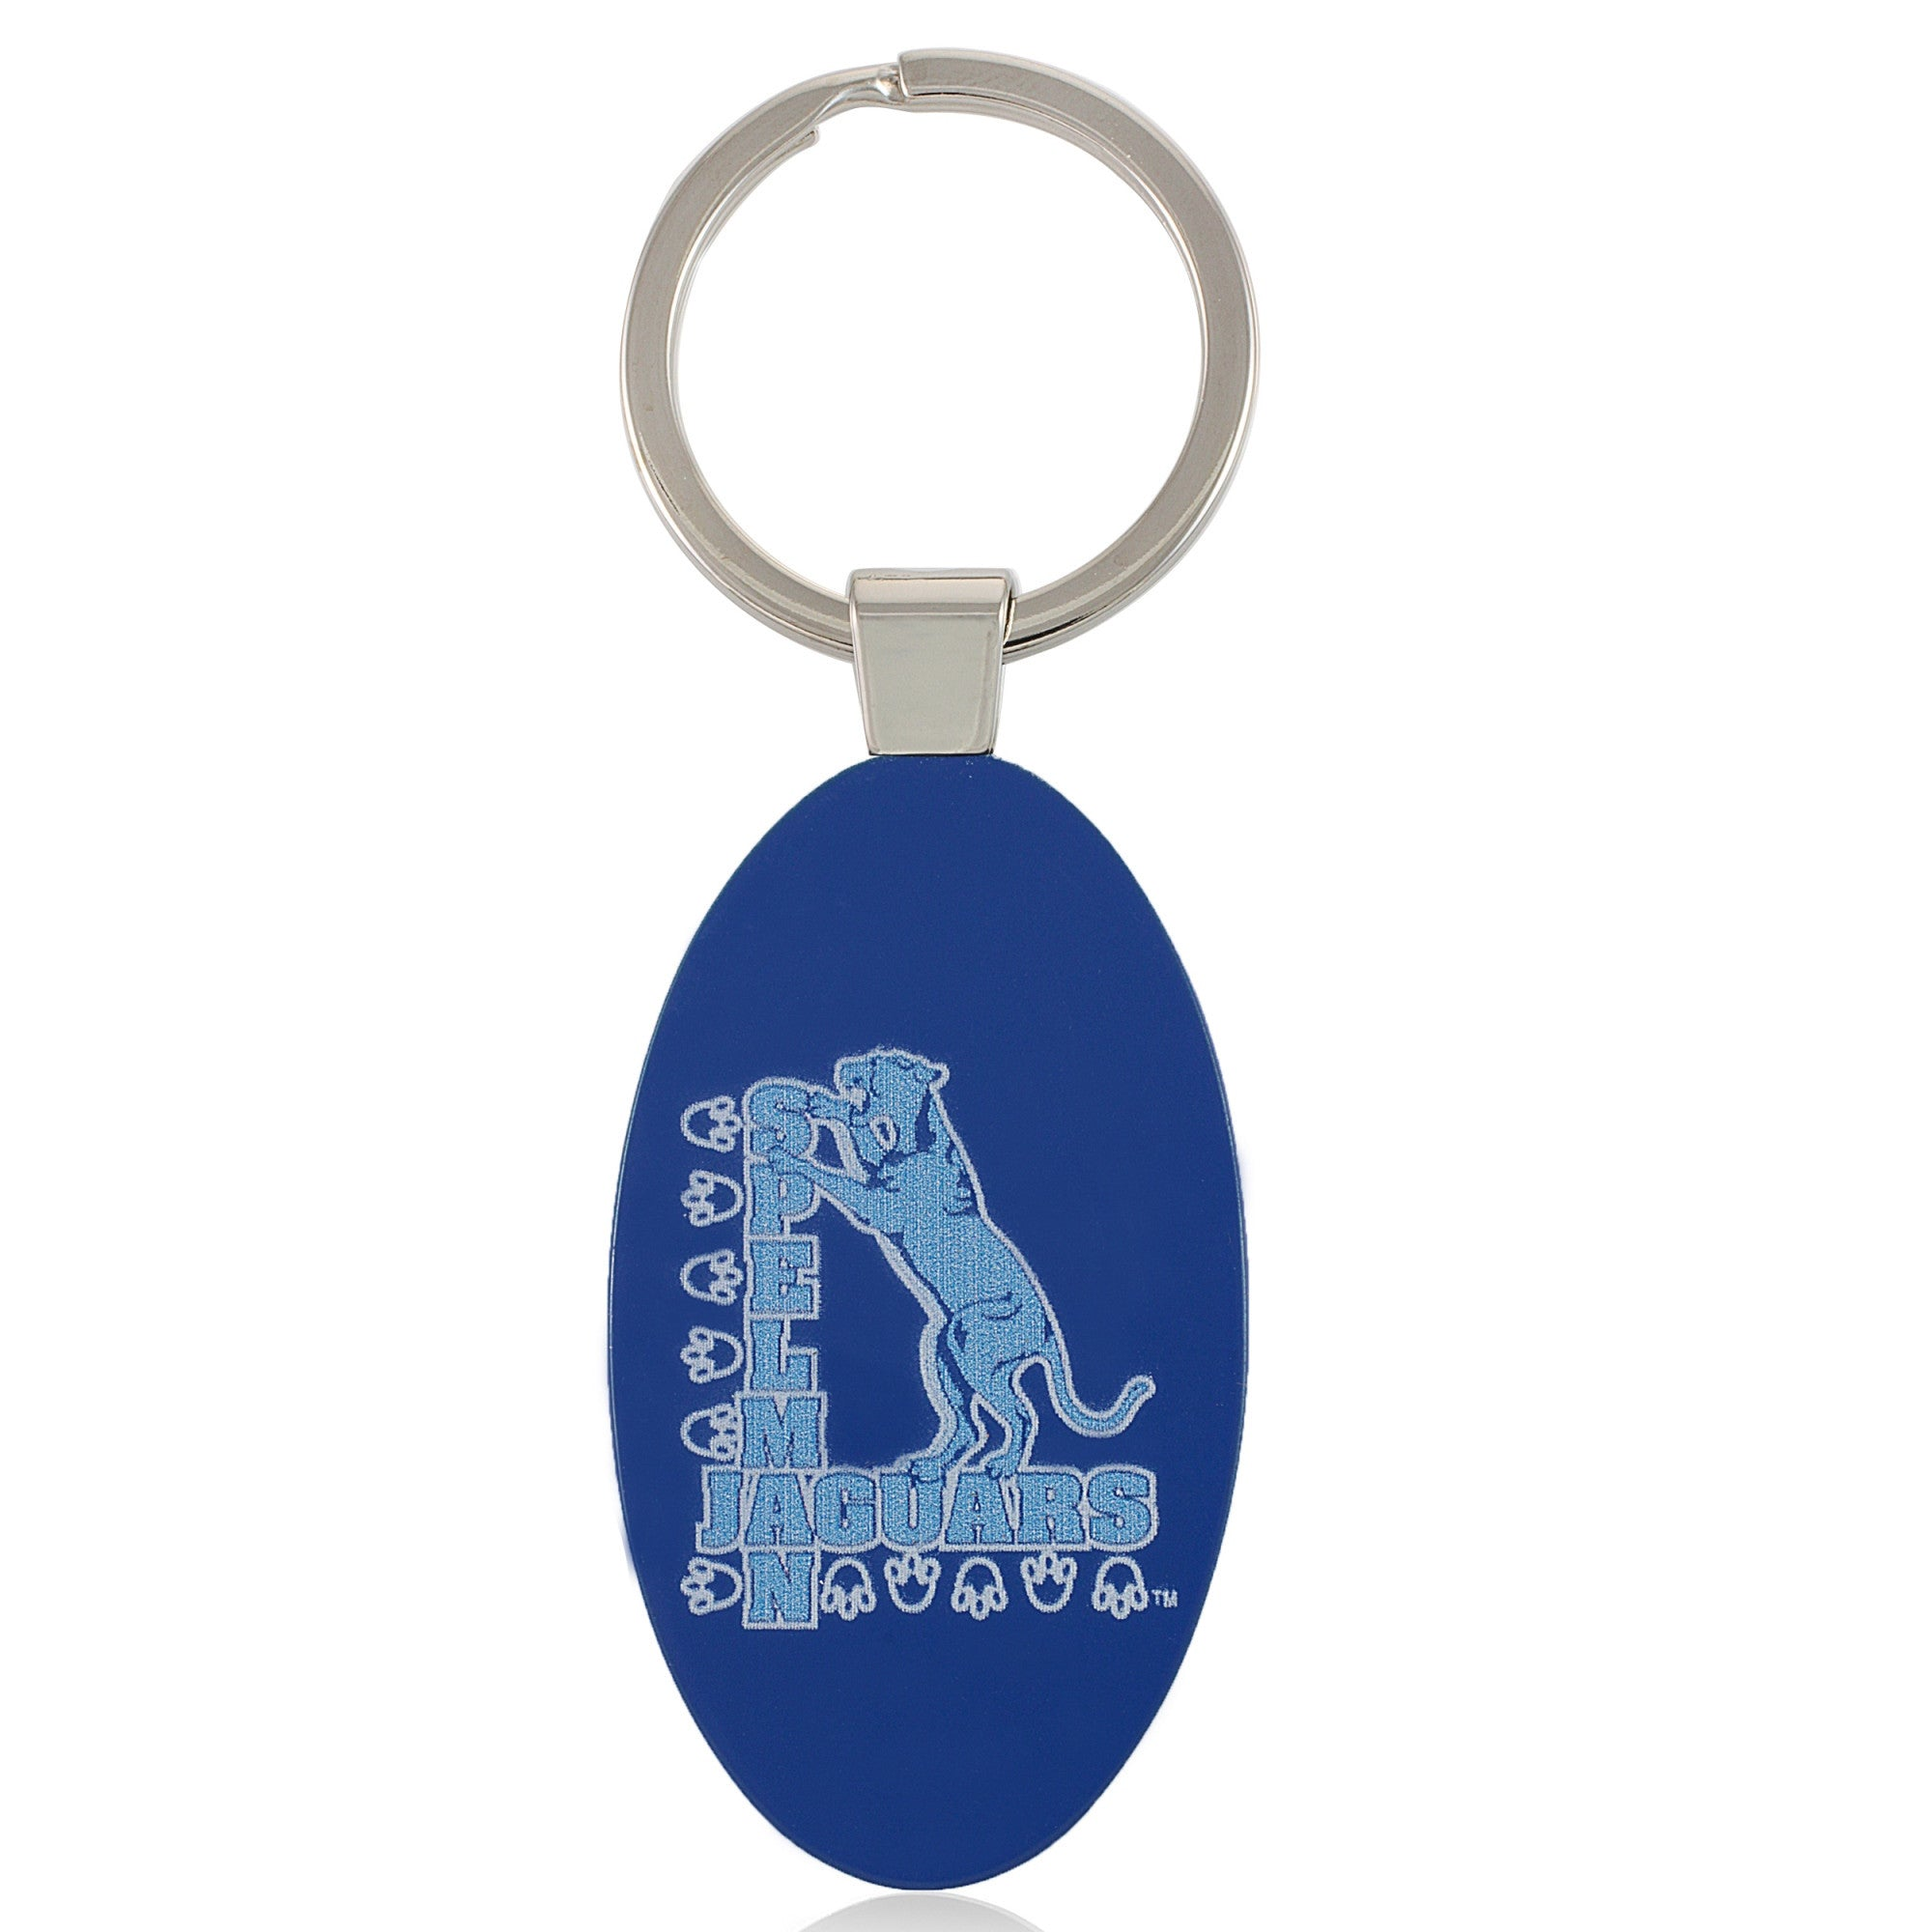 Spelman College Jaguars Key Chain